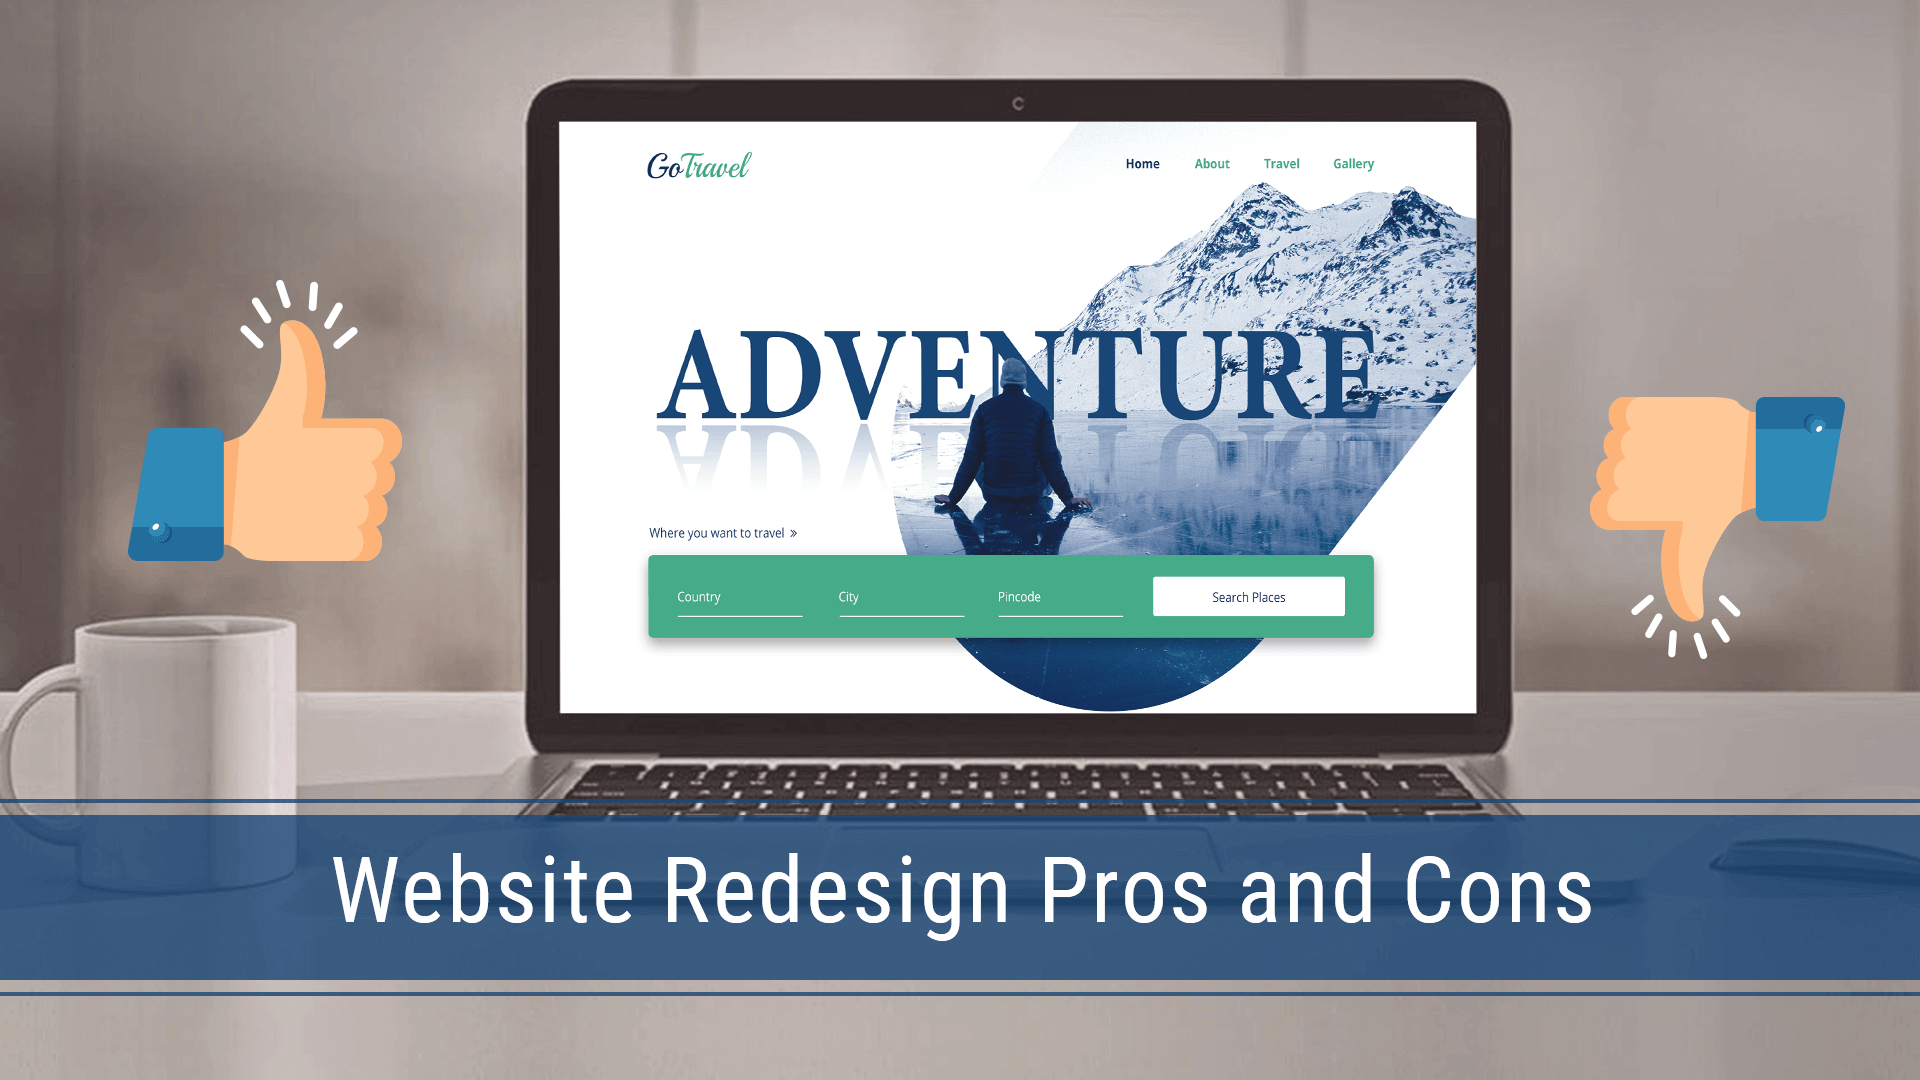 website redesign pros and cons